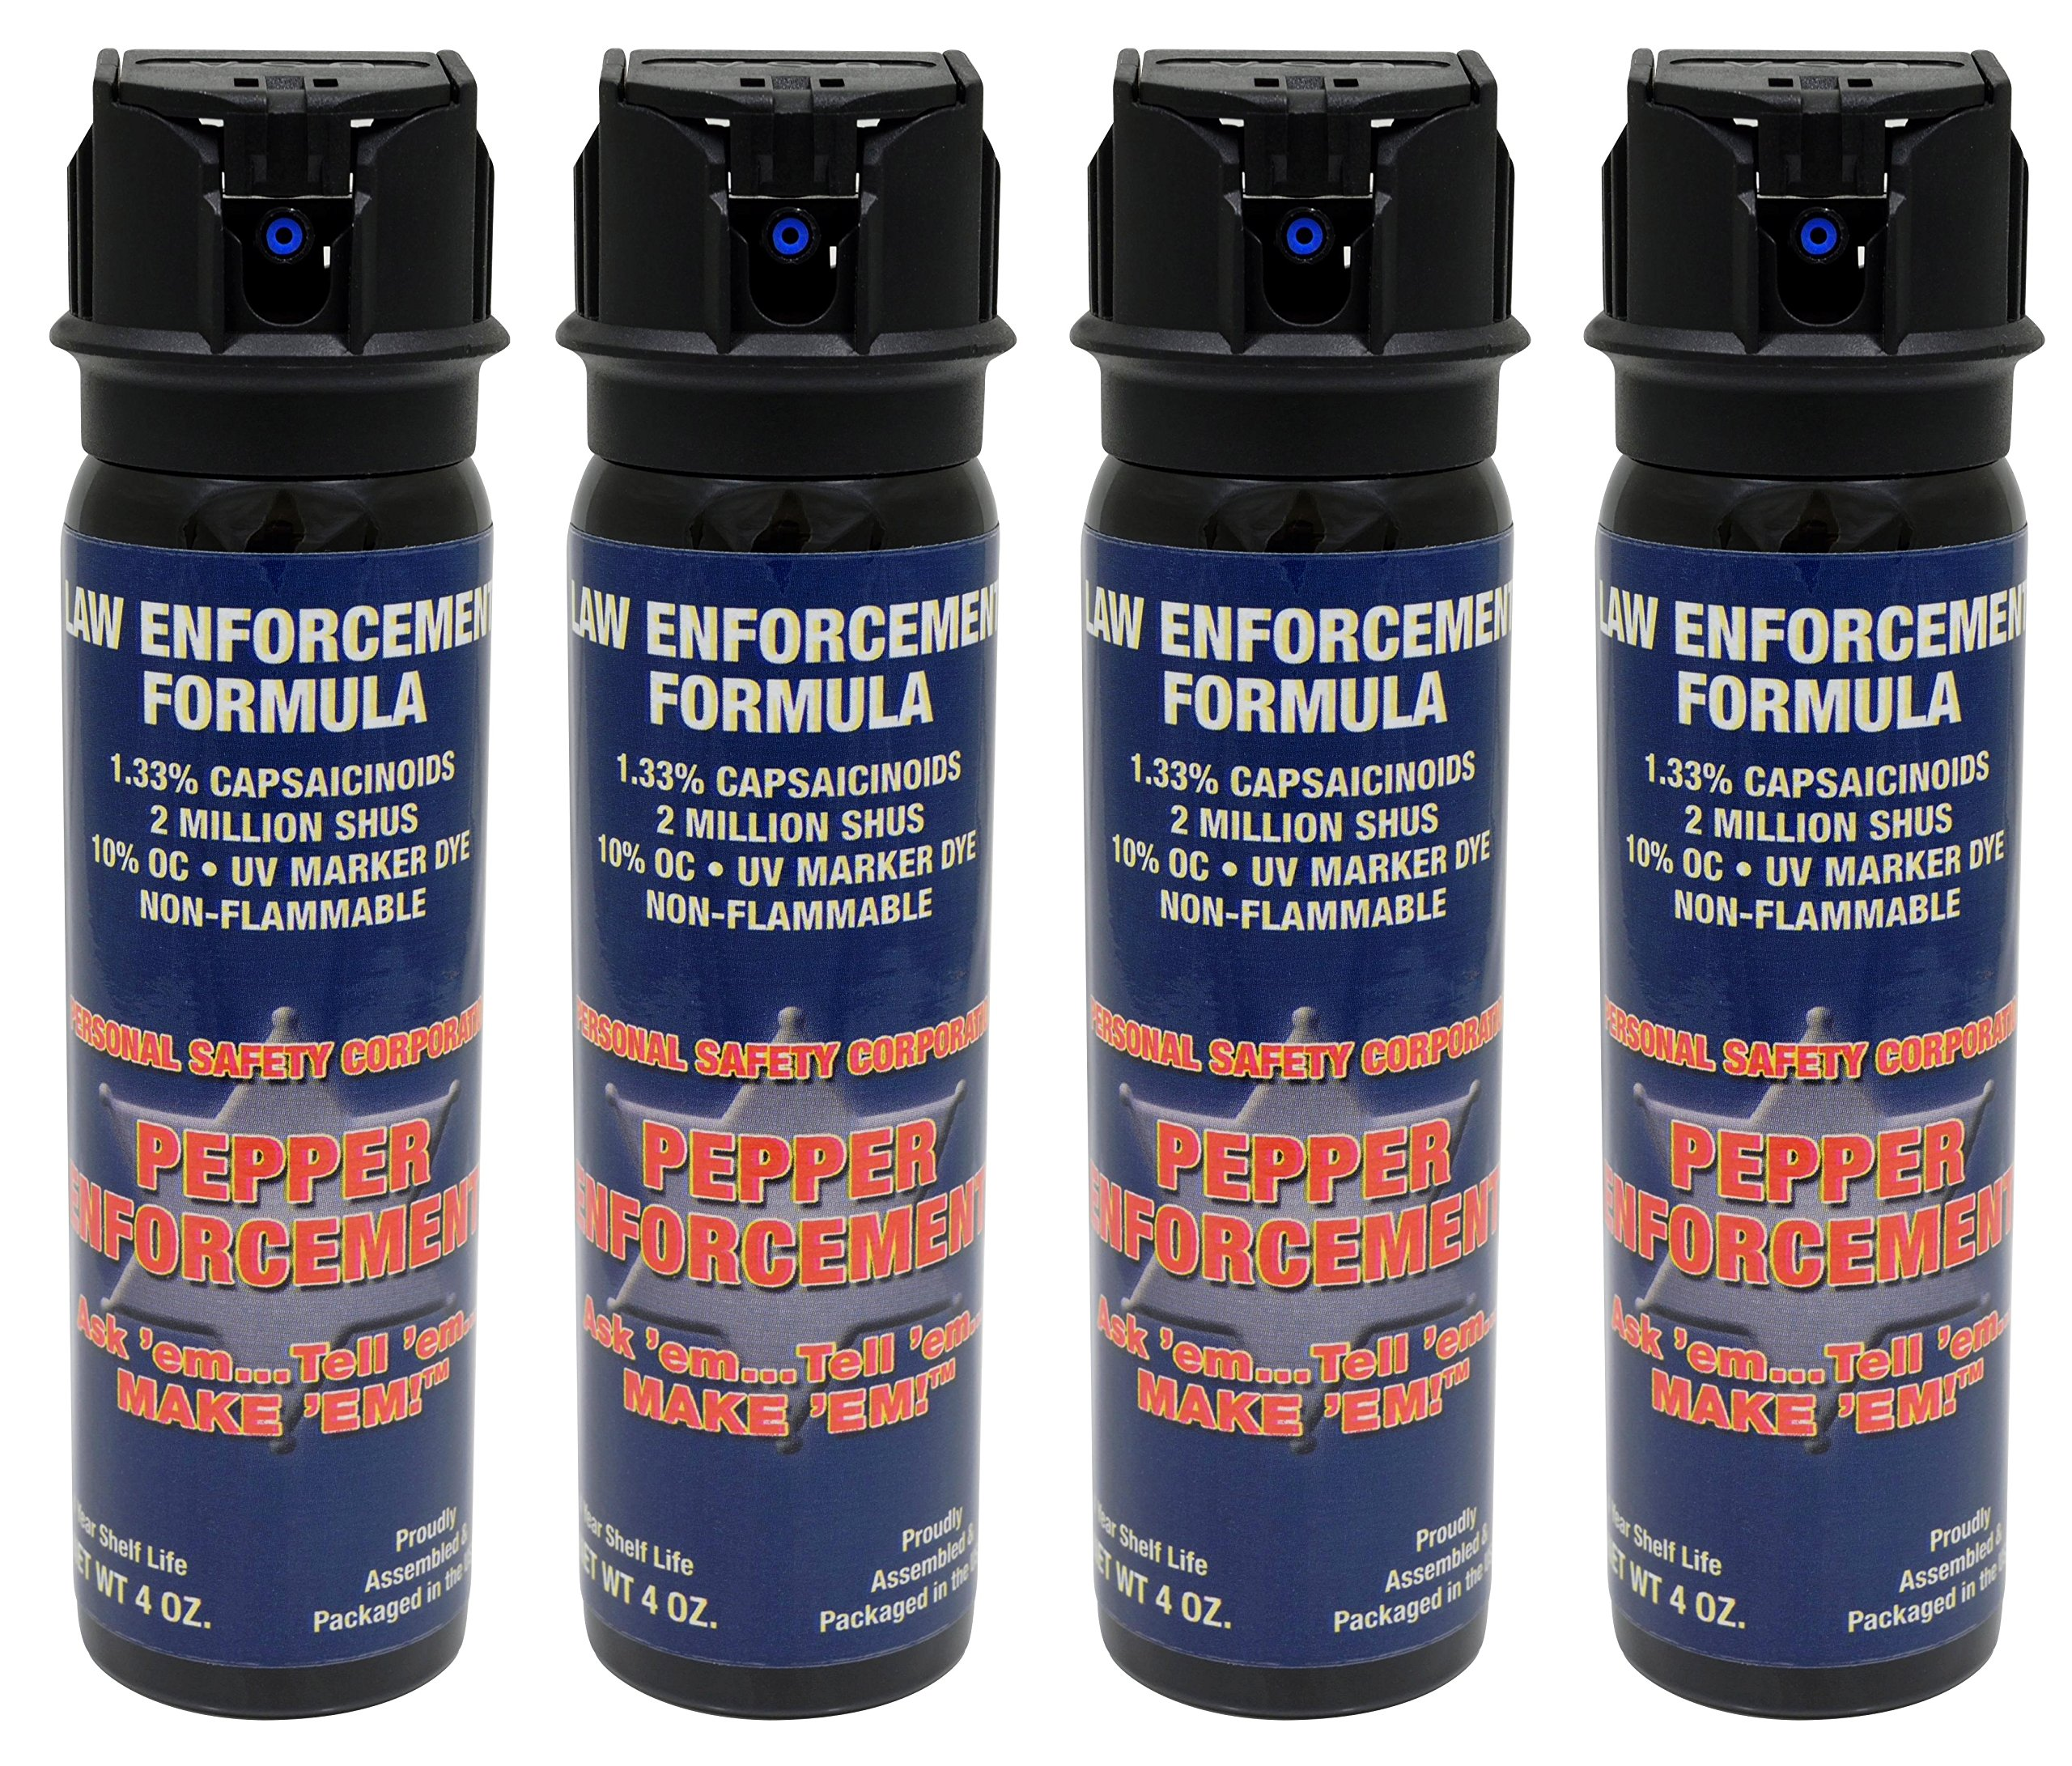 Pepper Enforcement (Pack of 4) 4 oz. Splatter Stream Police Strength 10% OC Flip Top Spray - Professional Grade Emergency Self Defense Non Lethal Weapon for Personal Protection and Safety